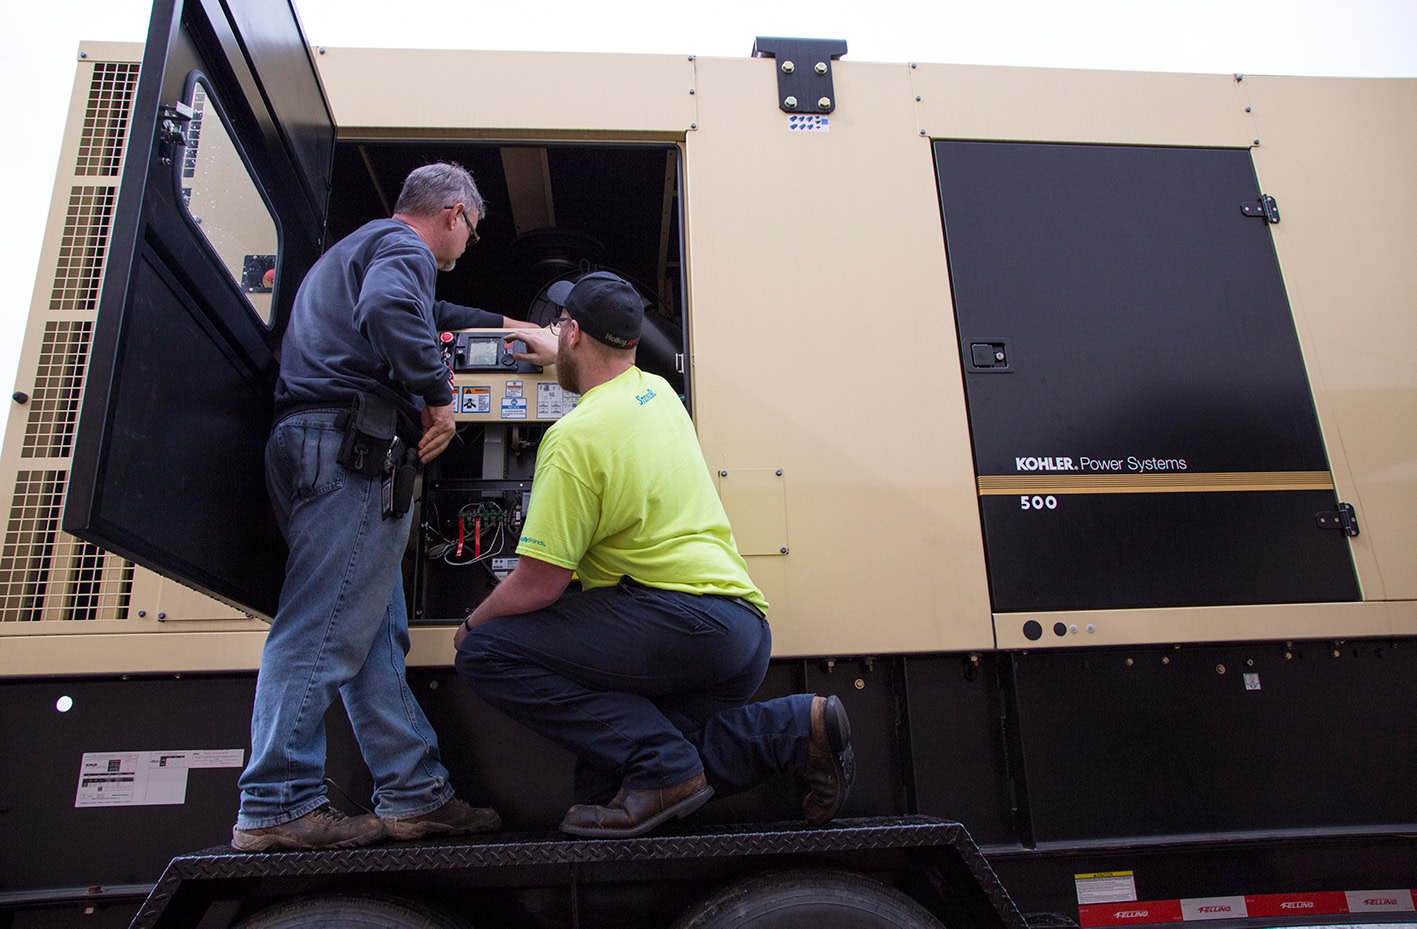 Industrial Generator Maintenance - Tech Support - Service